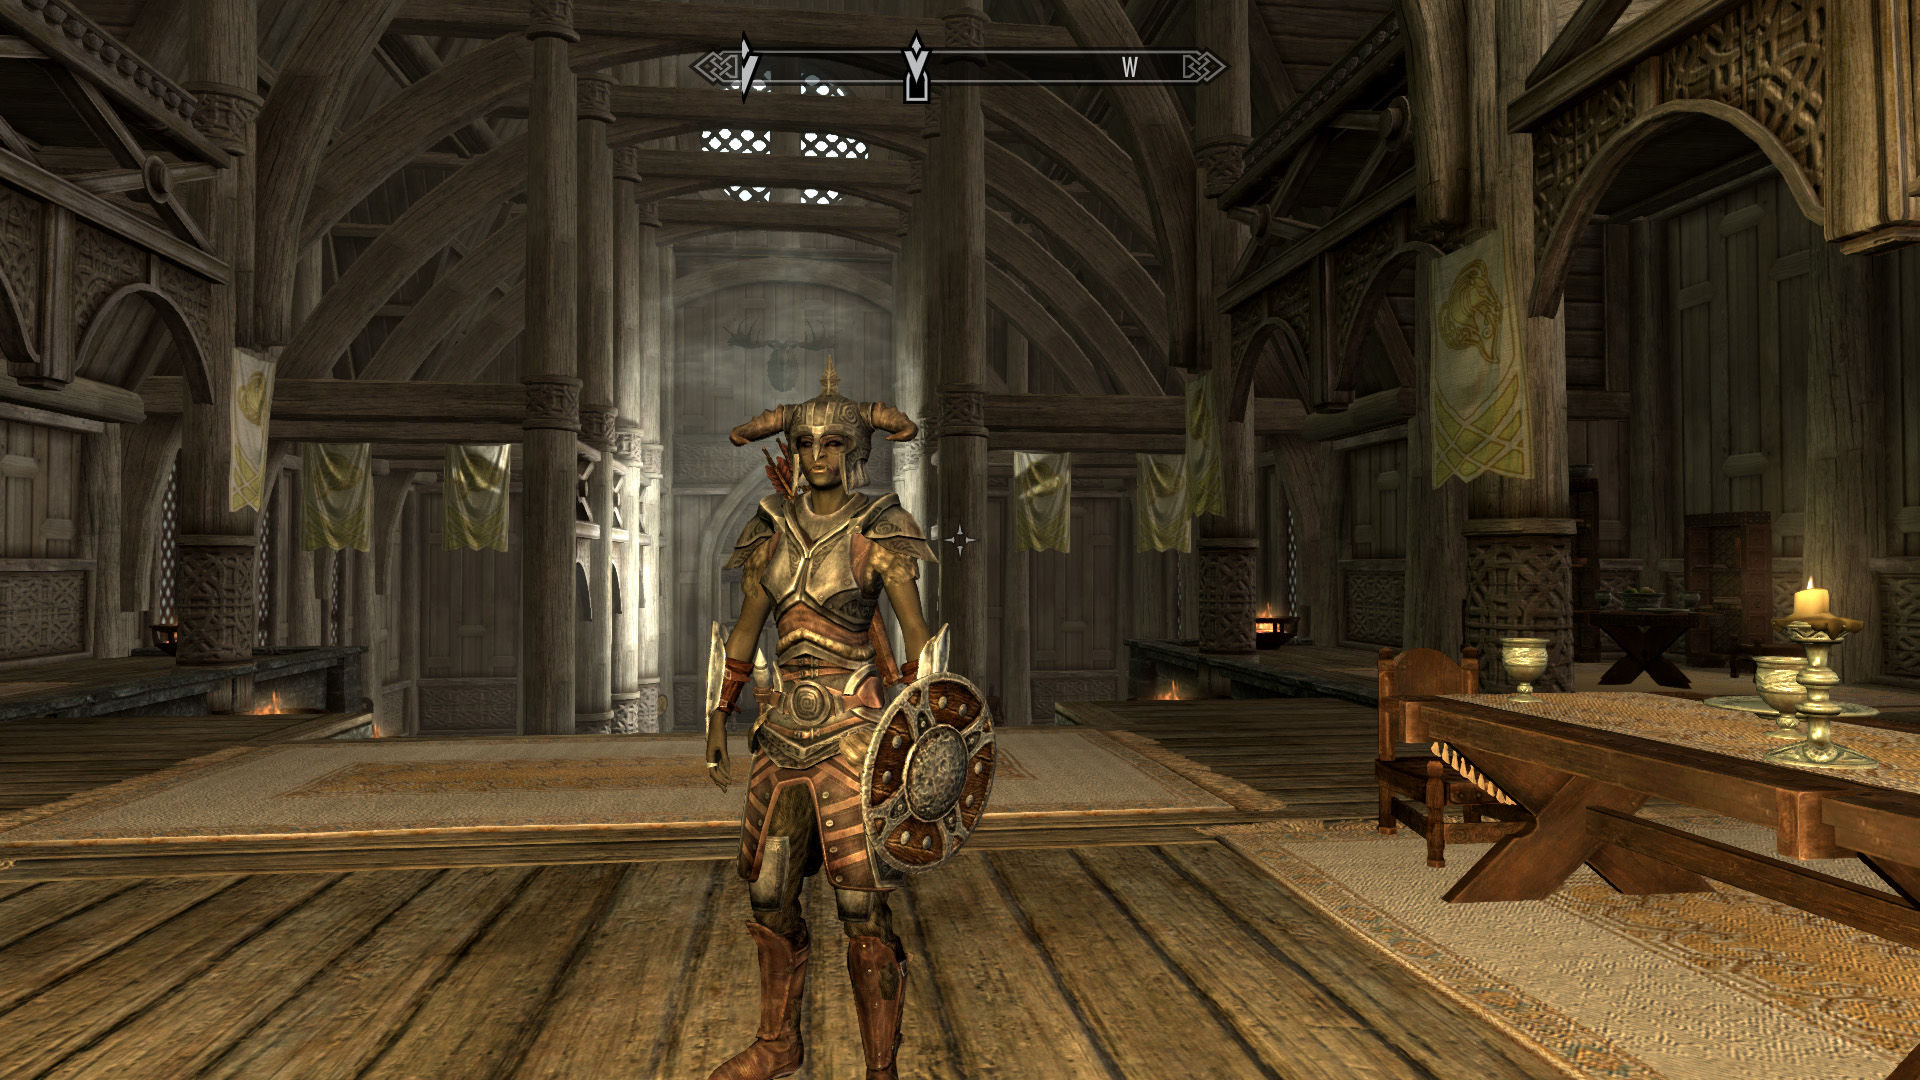 cjskater games players they hate playing sets port going wait skseskyui with default something console know will about probably inventory system equipment never special ps4xboxone really skyrim elder scrolls year game price full seeing willing